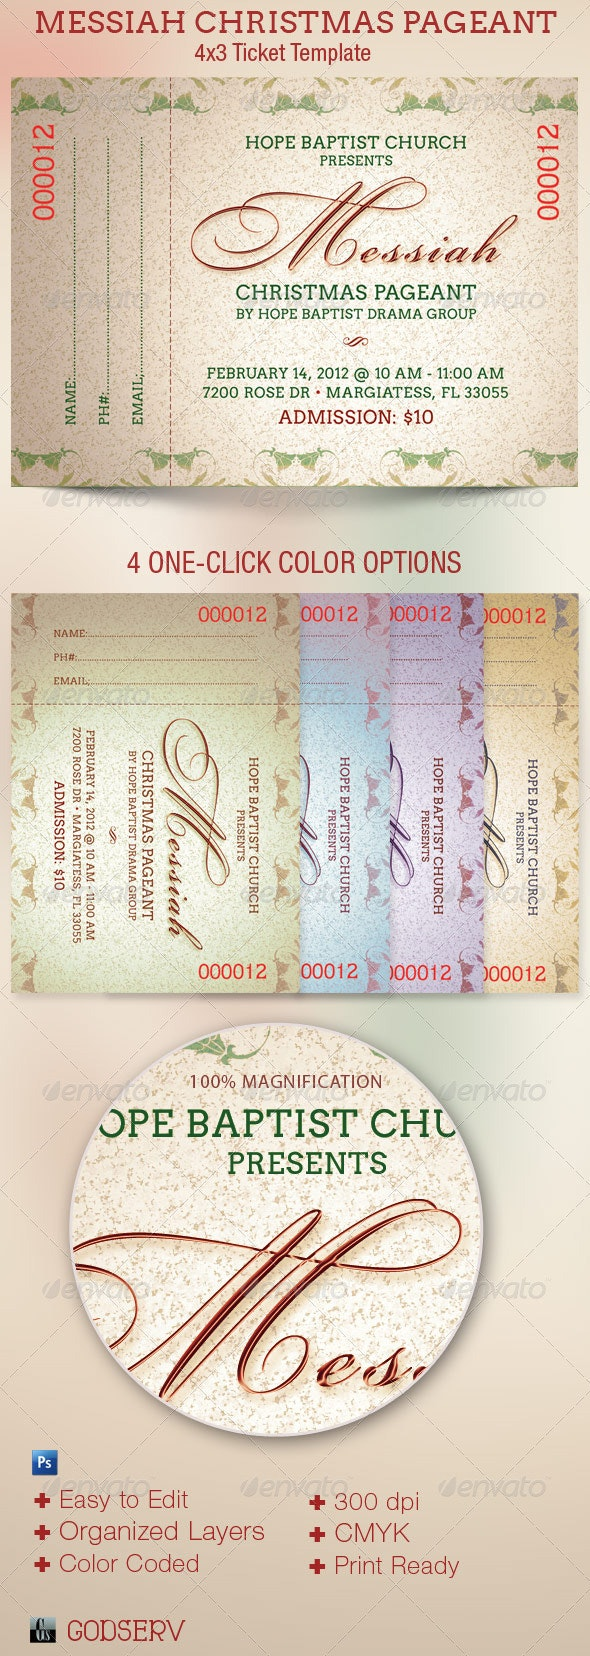 Messiah Christmas Pageant Ticket Template - Miscellaneous Print Templates